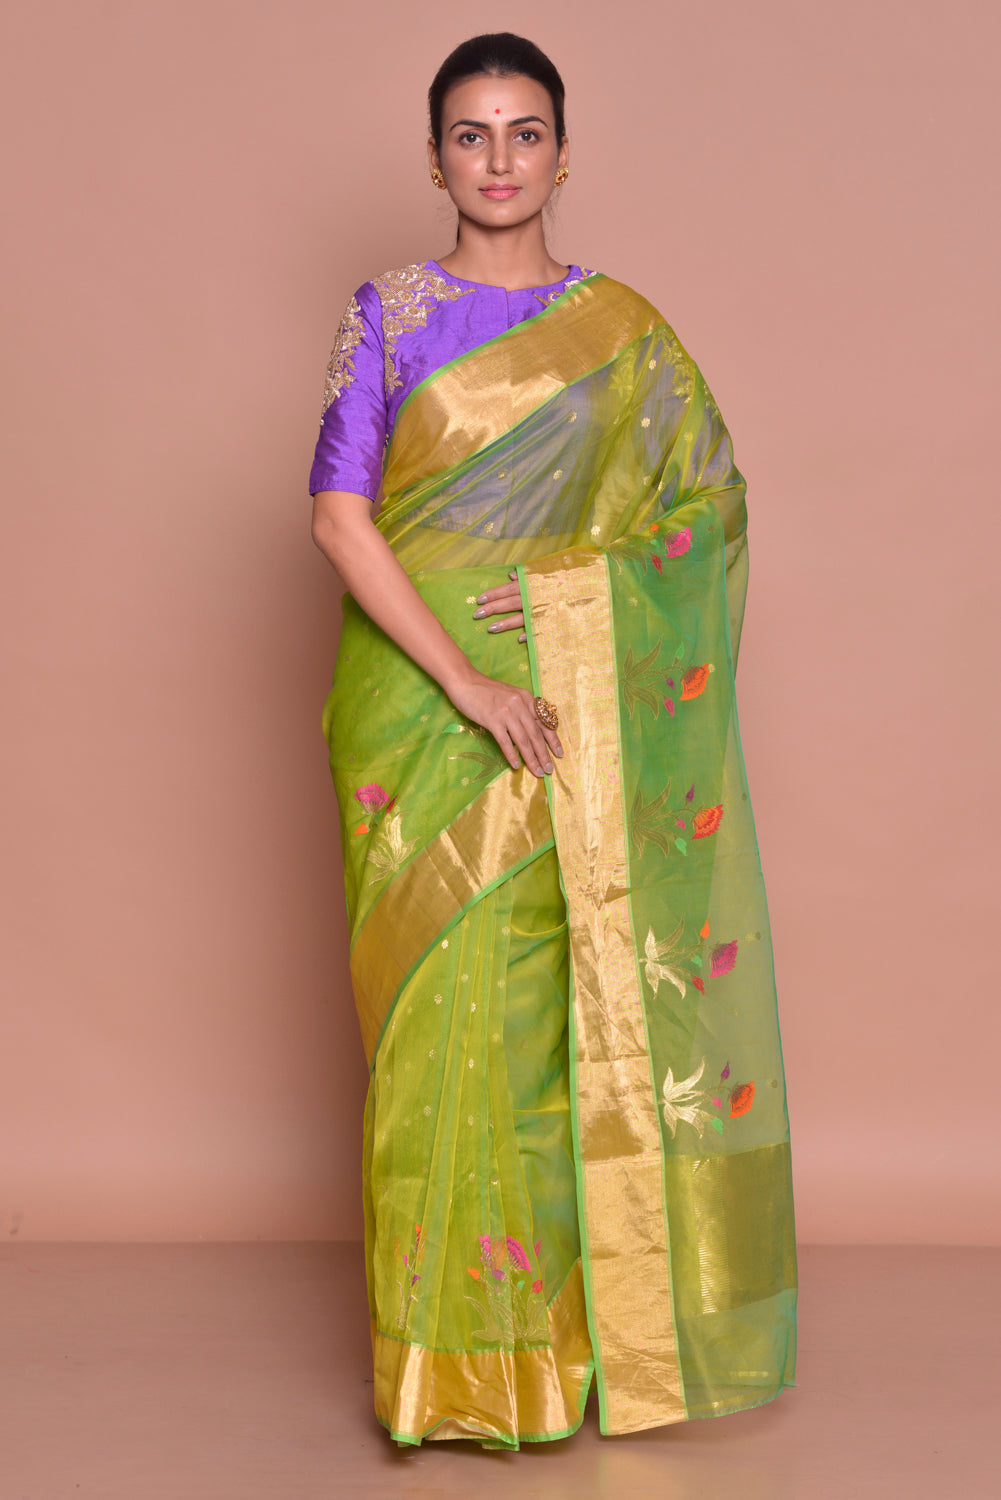 Buy stunning yellow green embroidered chanderi silk saree online in USA with purple embroidered sari blouse. Set ethnic fashion goals with exquisite designer sarees with blouse, Banarasi sarees, Kanchipuram saris from Pure Elegance Indian luxury clothing store in USA.-full view